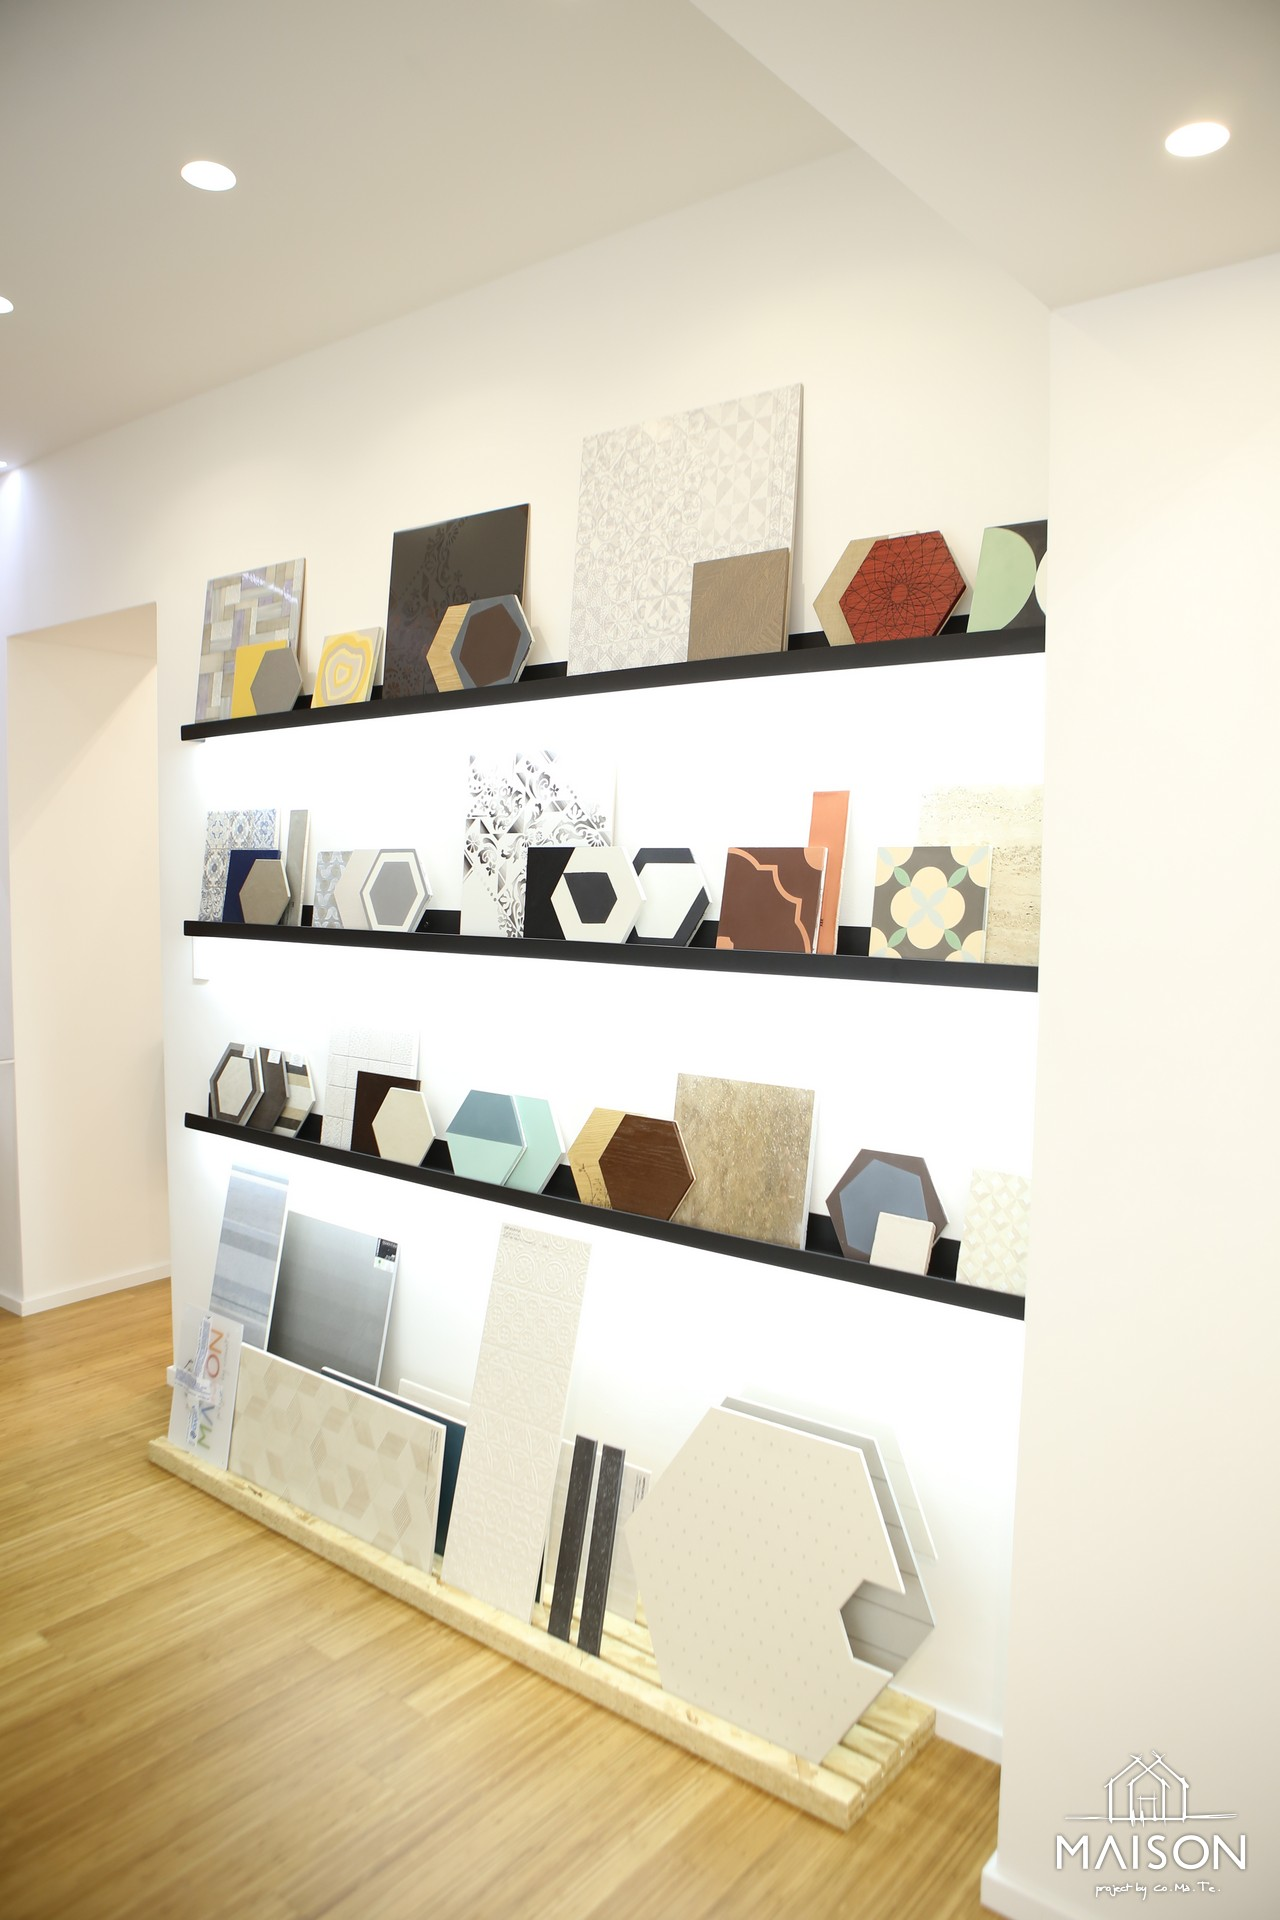 Inaugurazione ShowRoom Maison Project Palermo